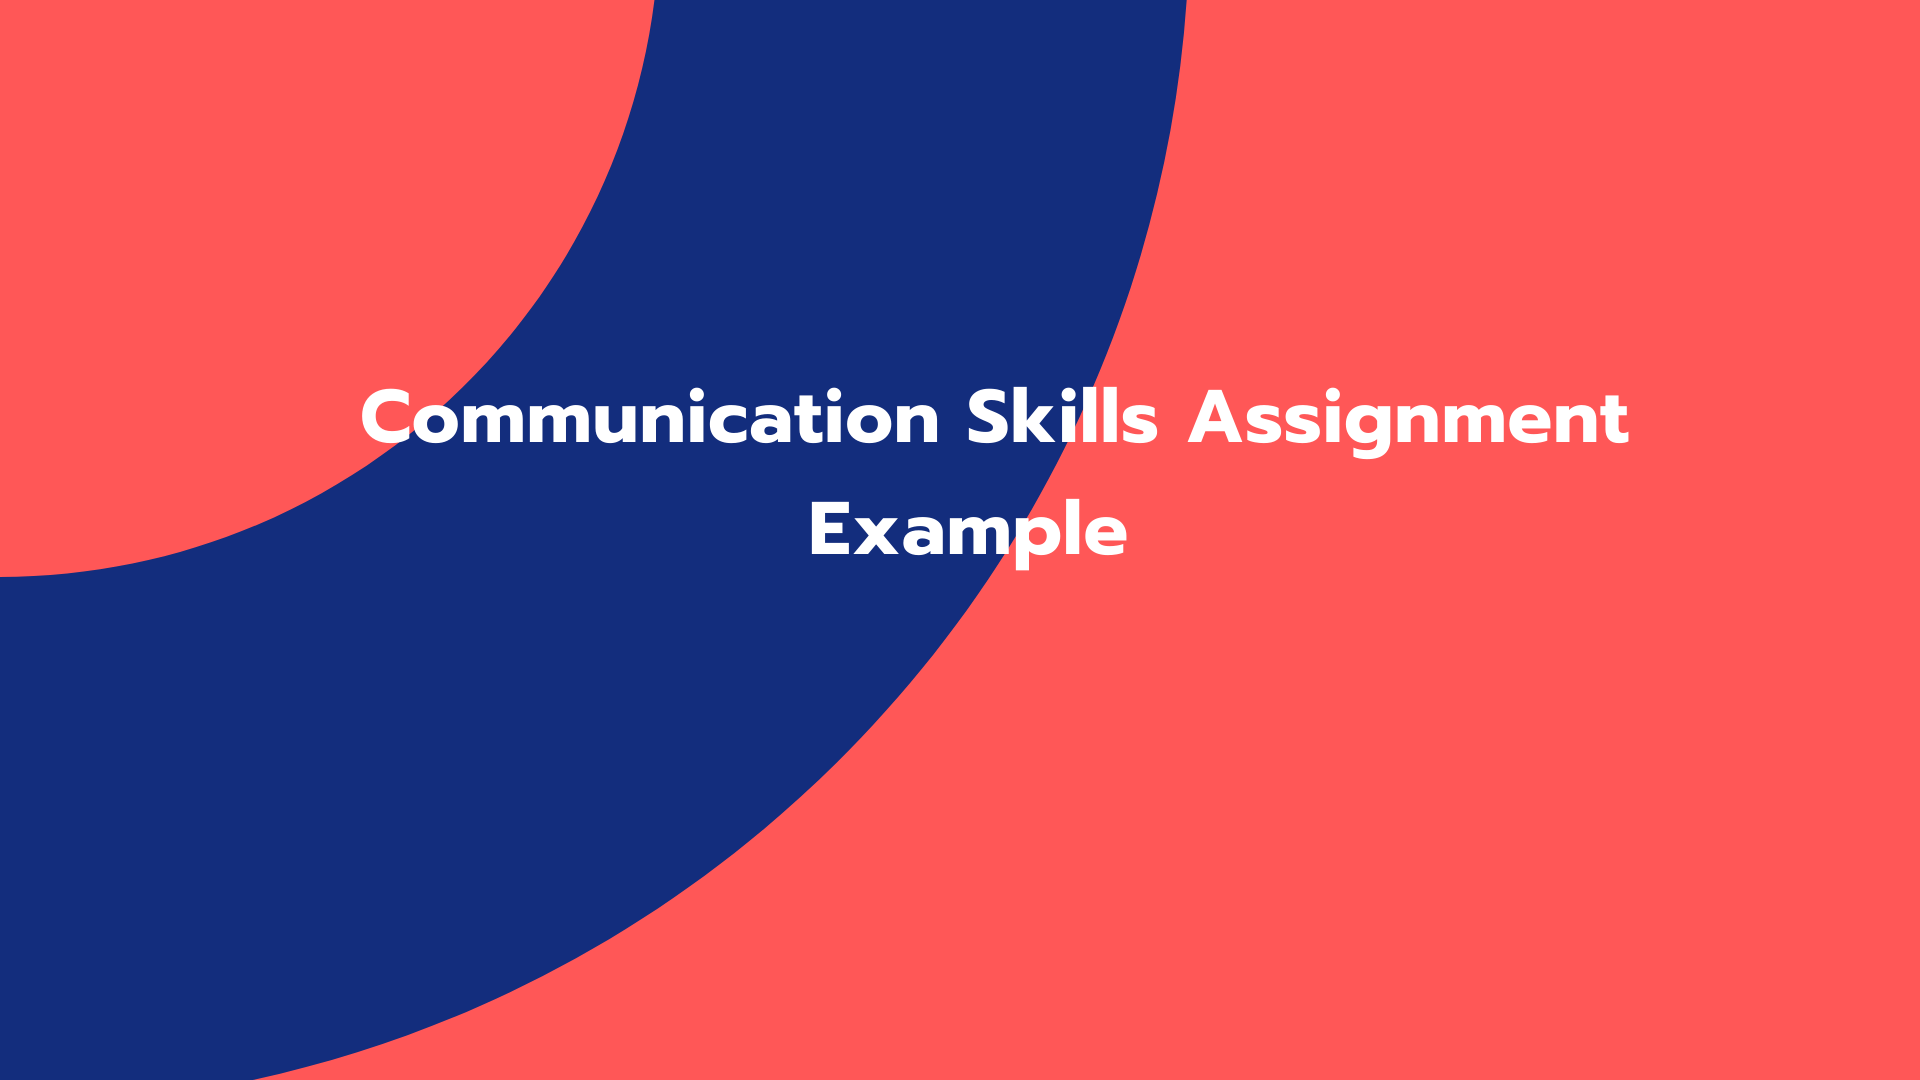 Communication skills Assignment